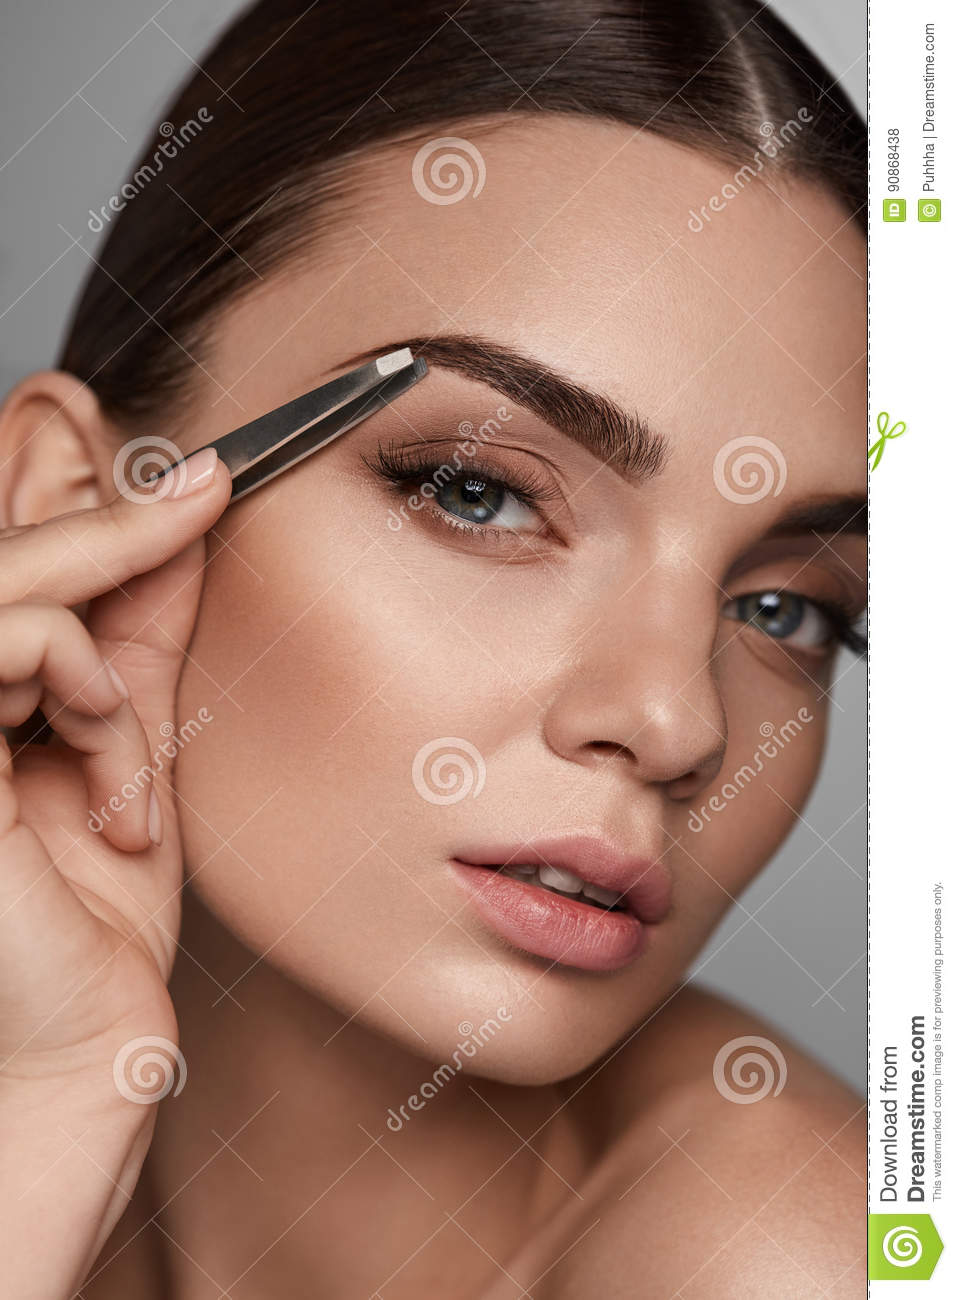 Watch How to Pluck Eyebrows video